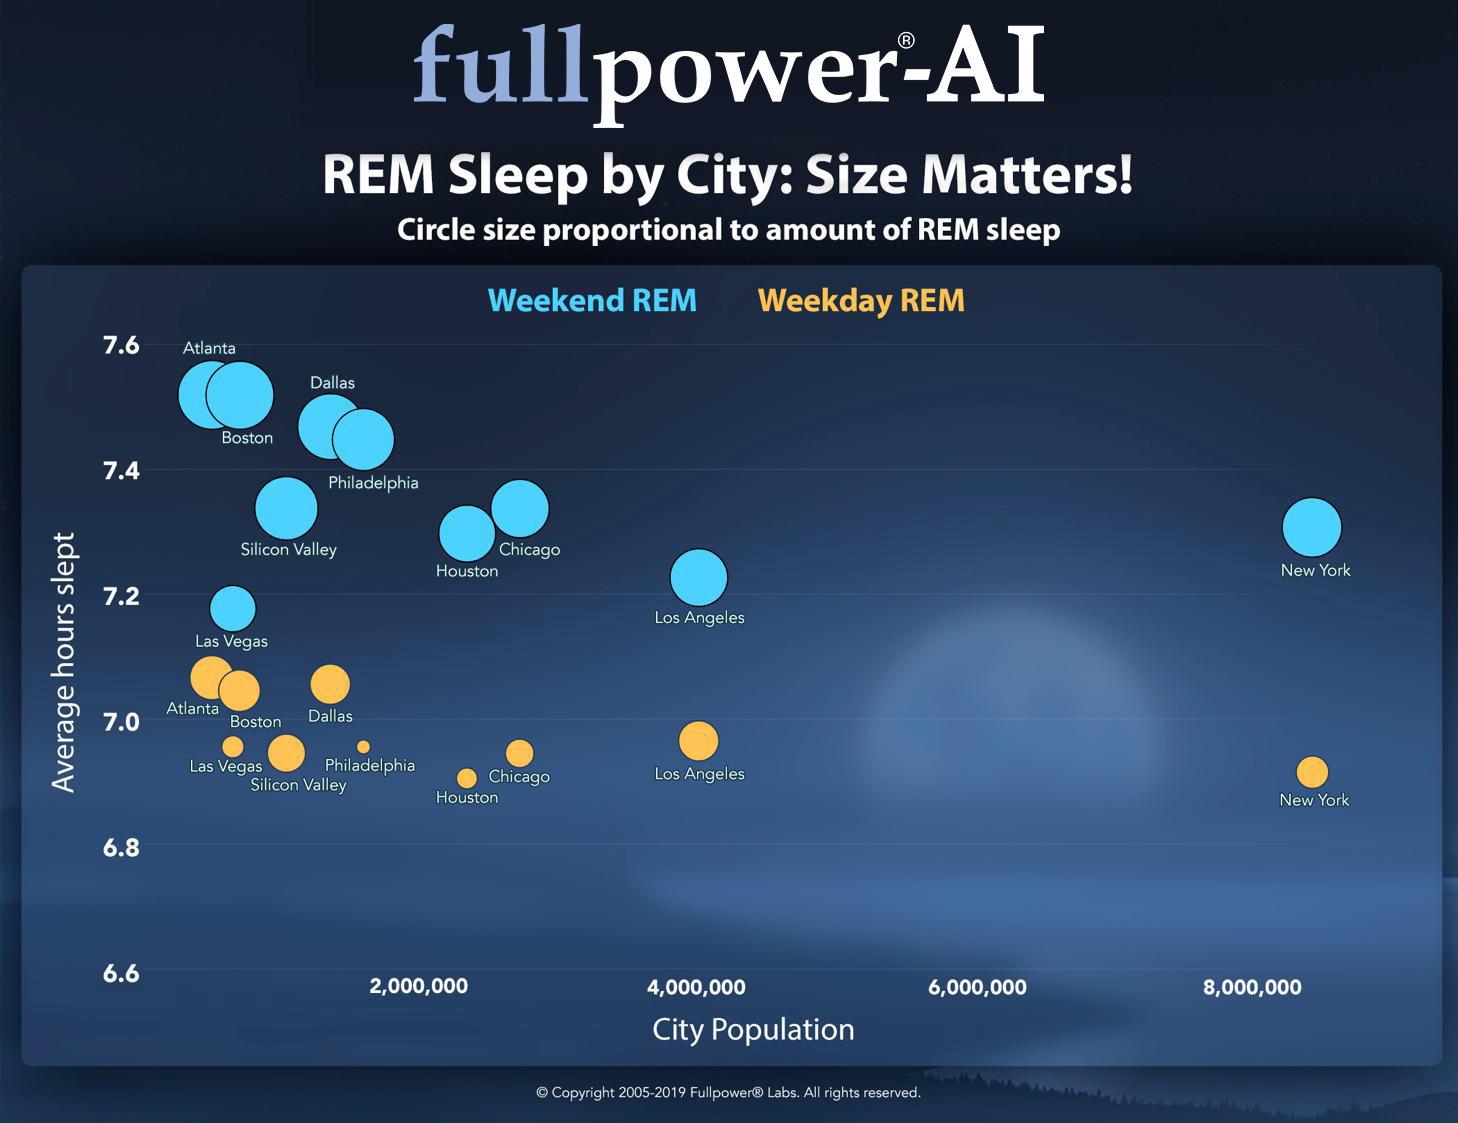 REM Sleep by City: Size Matters!